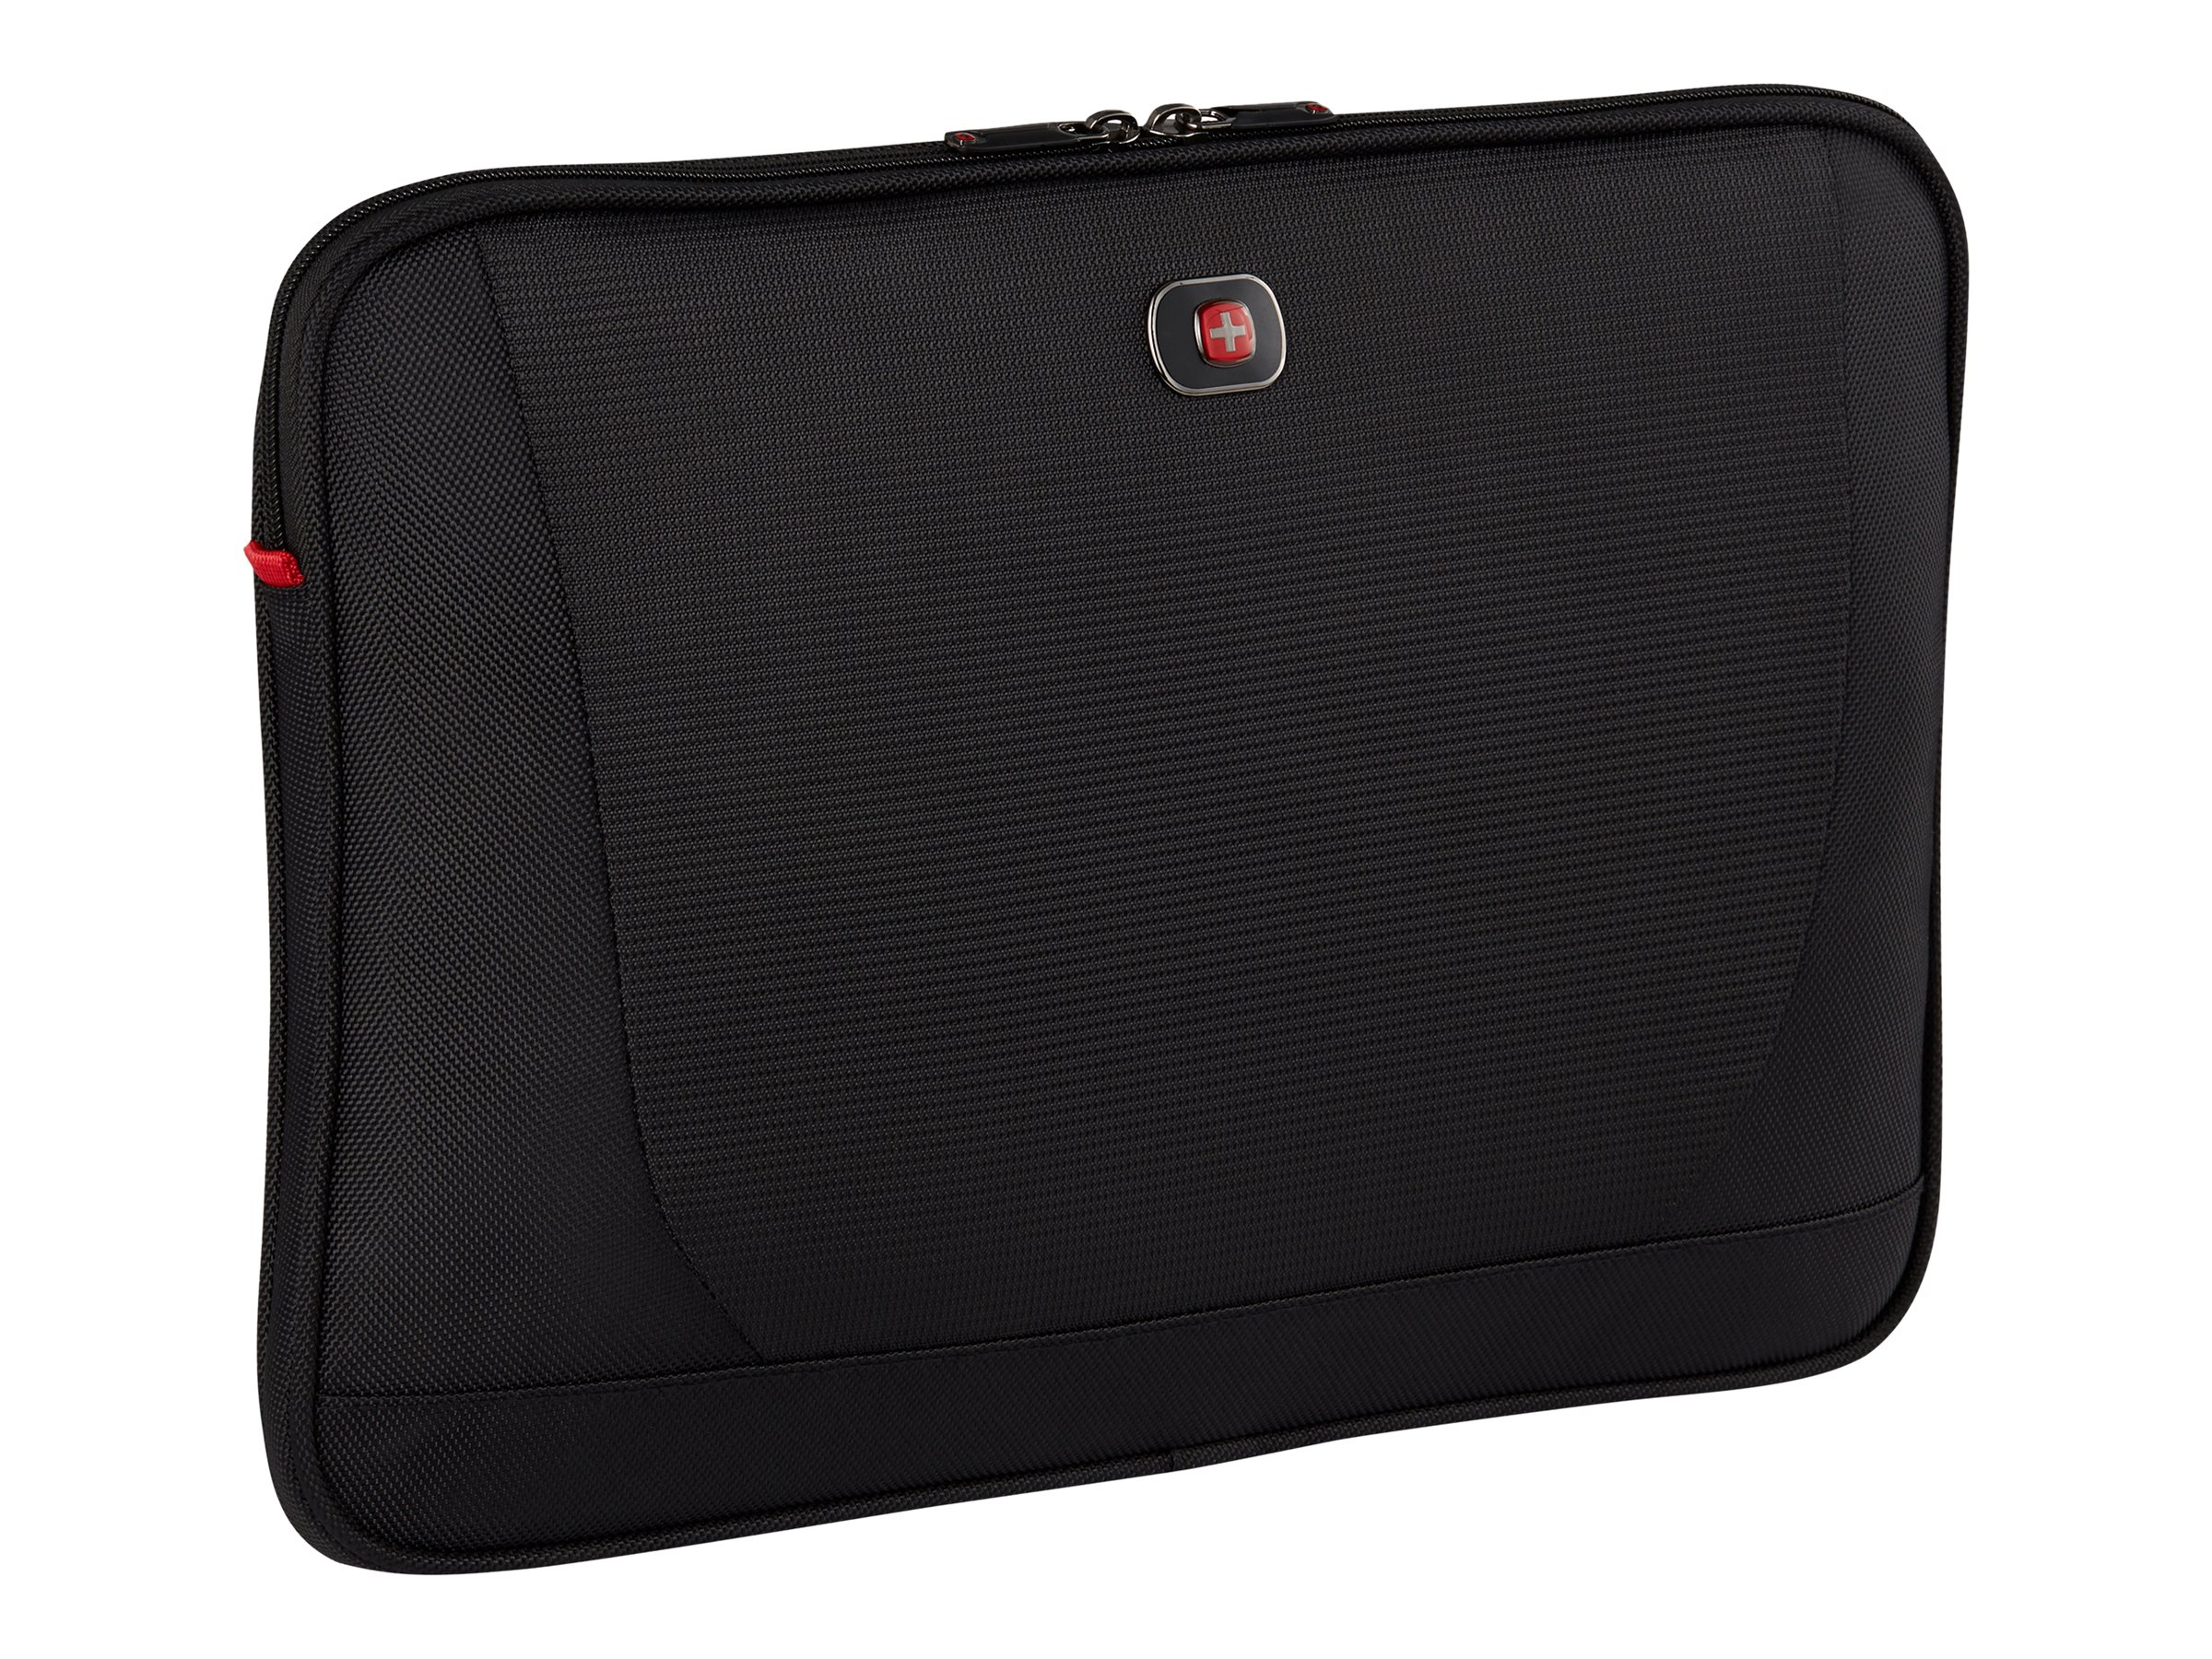 Wenger SwissGear Beta 16 Laptop Sleeve 16 Laptop, Black